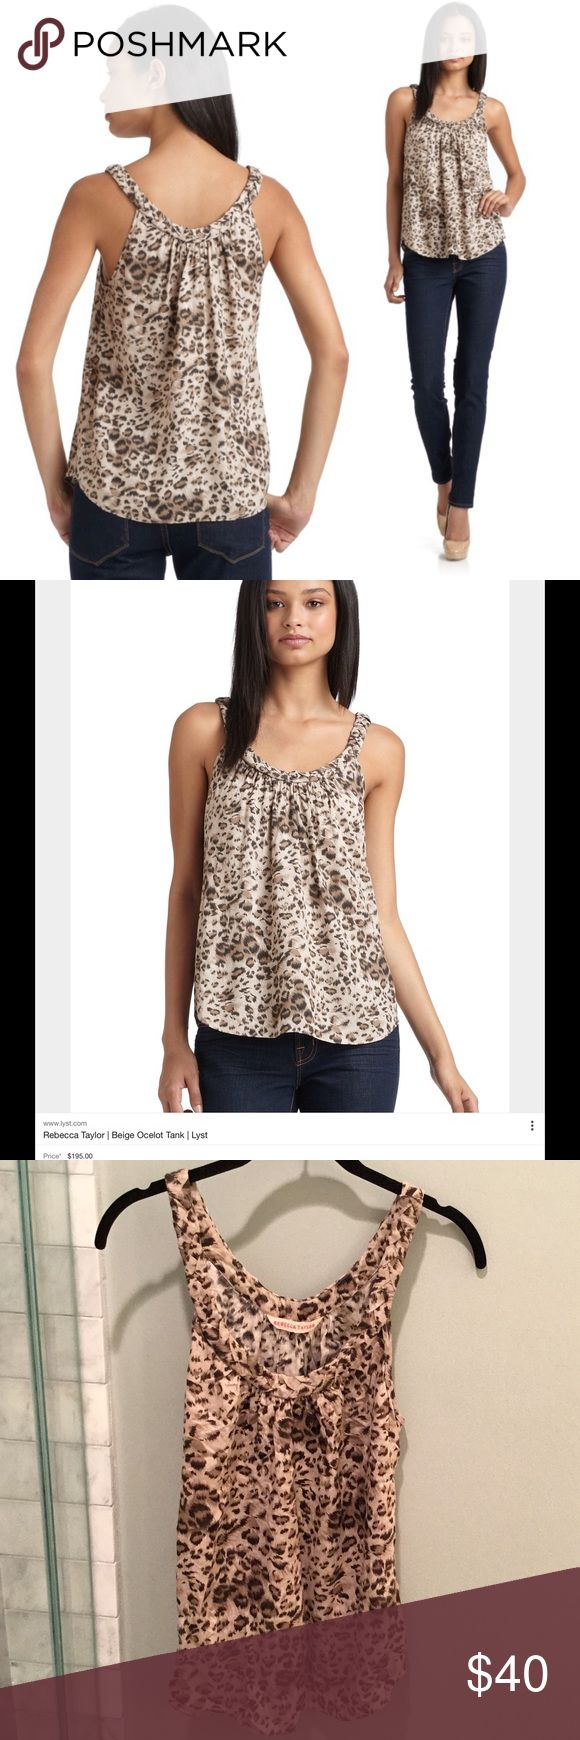 Rebecca Taylor Animal Print Cami Rebecca Taylor Ocelot Leopard Animal Print Camisole. Size 2, fits like an XS or a smaller busted small. 100% Rayon. Excellent condition. Retail $195 Rebecca Taylor Tops Camisoles